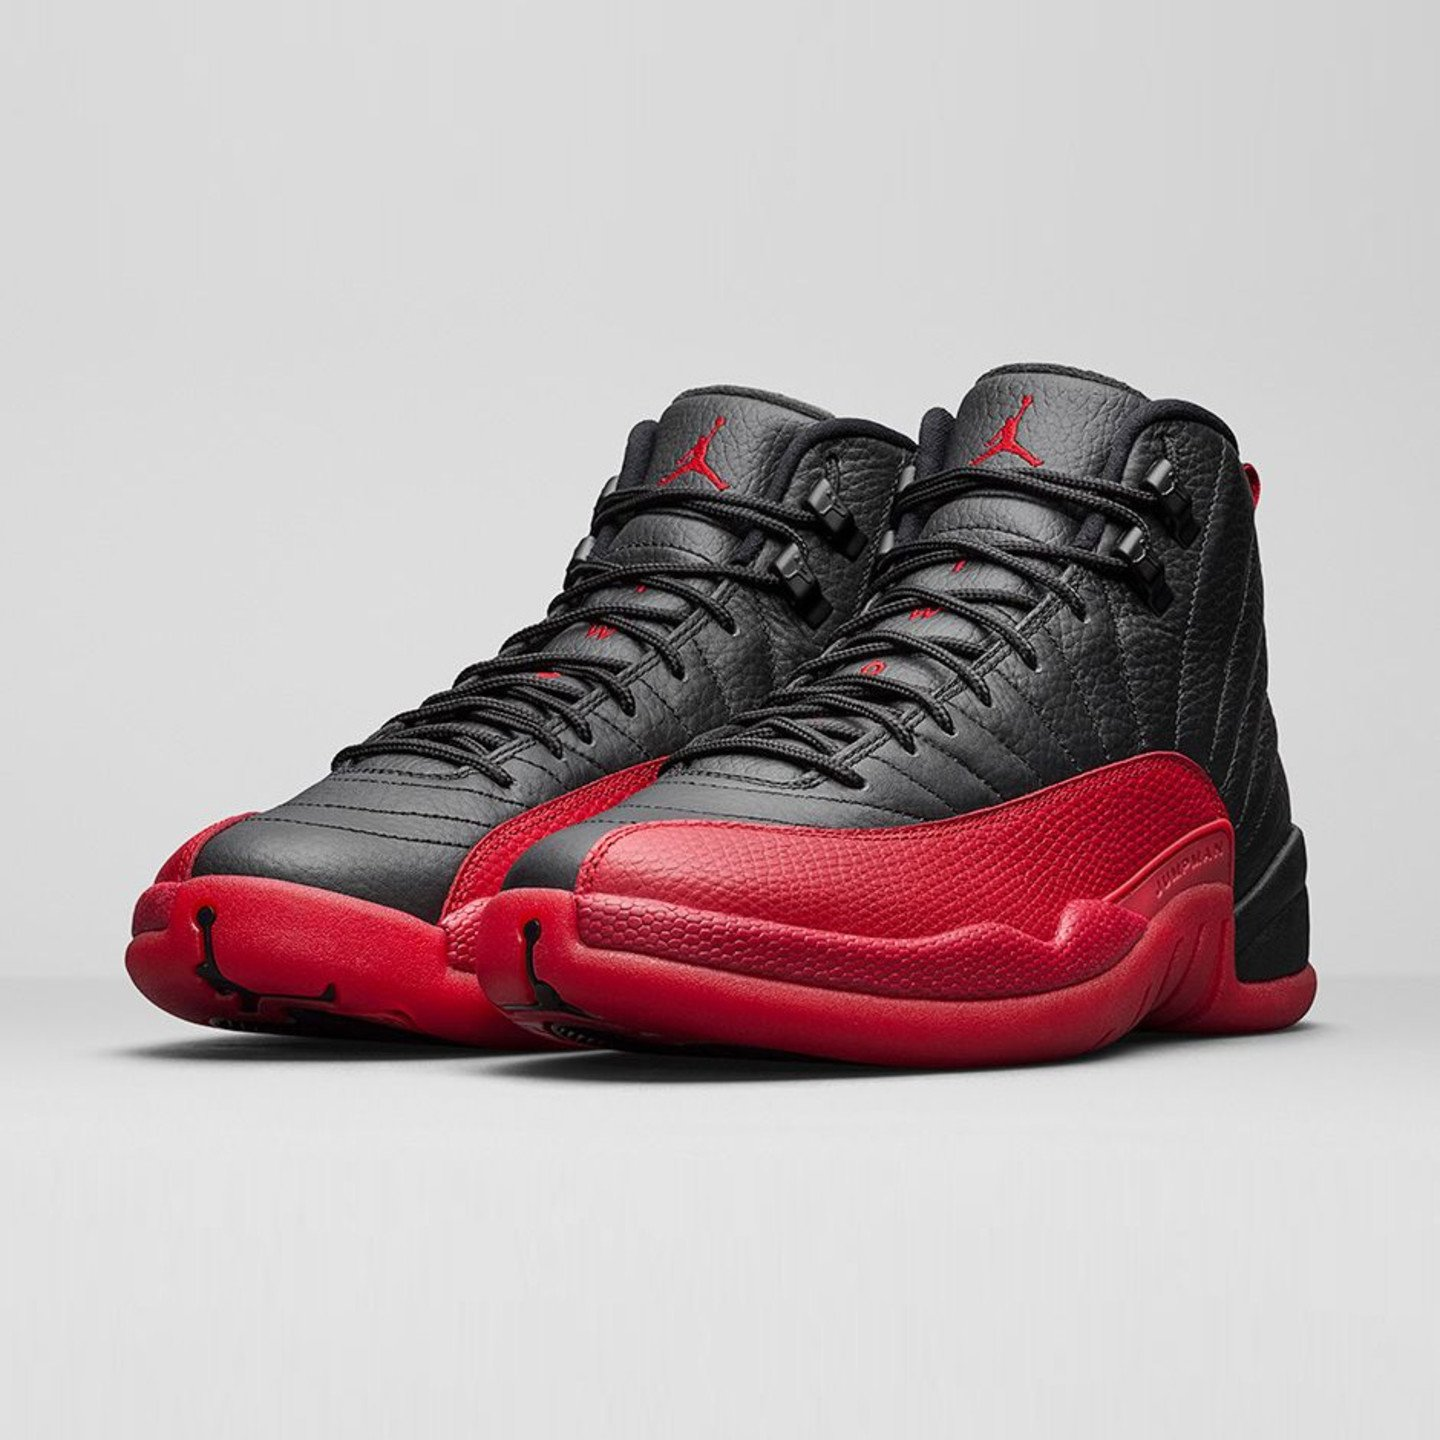 Jordan Air Jordan 12 Retro 'Flu Game' Black / Varsity Red 130690-002-43